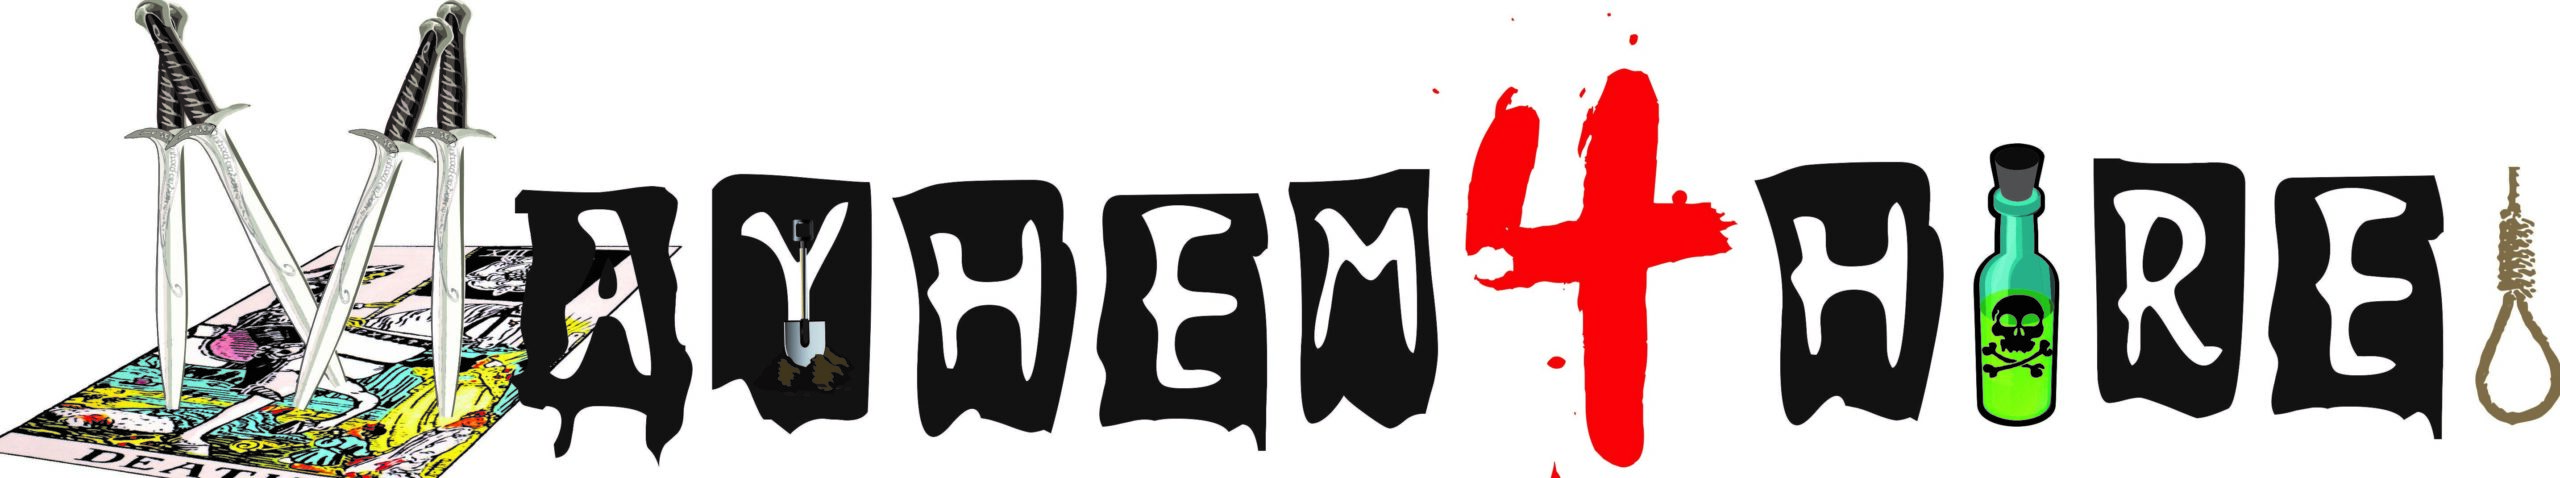 Mayhem4Hire.com